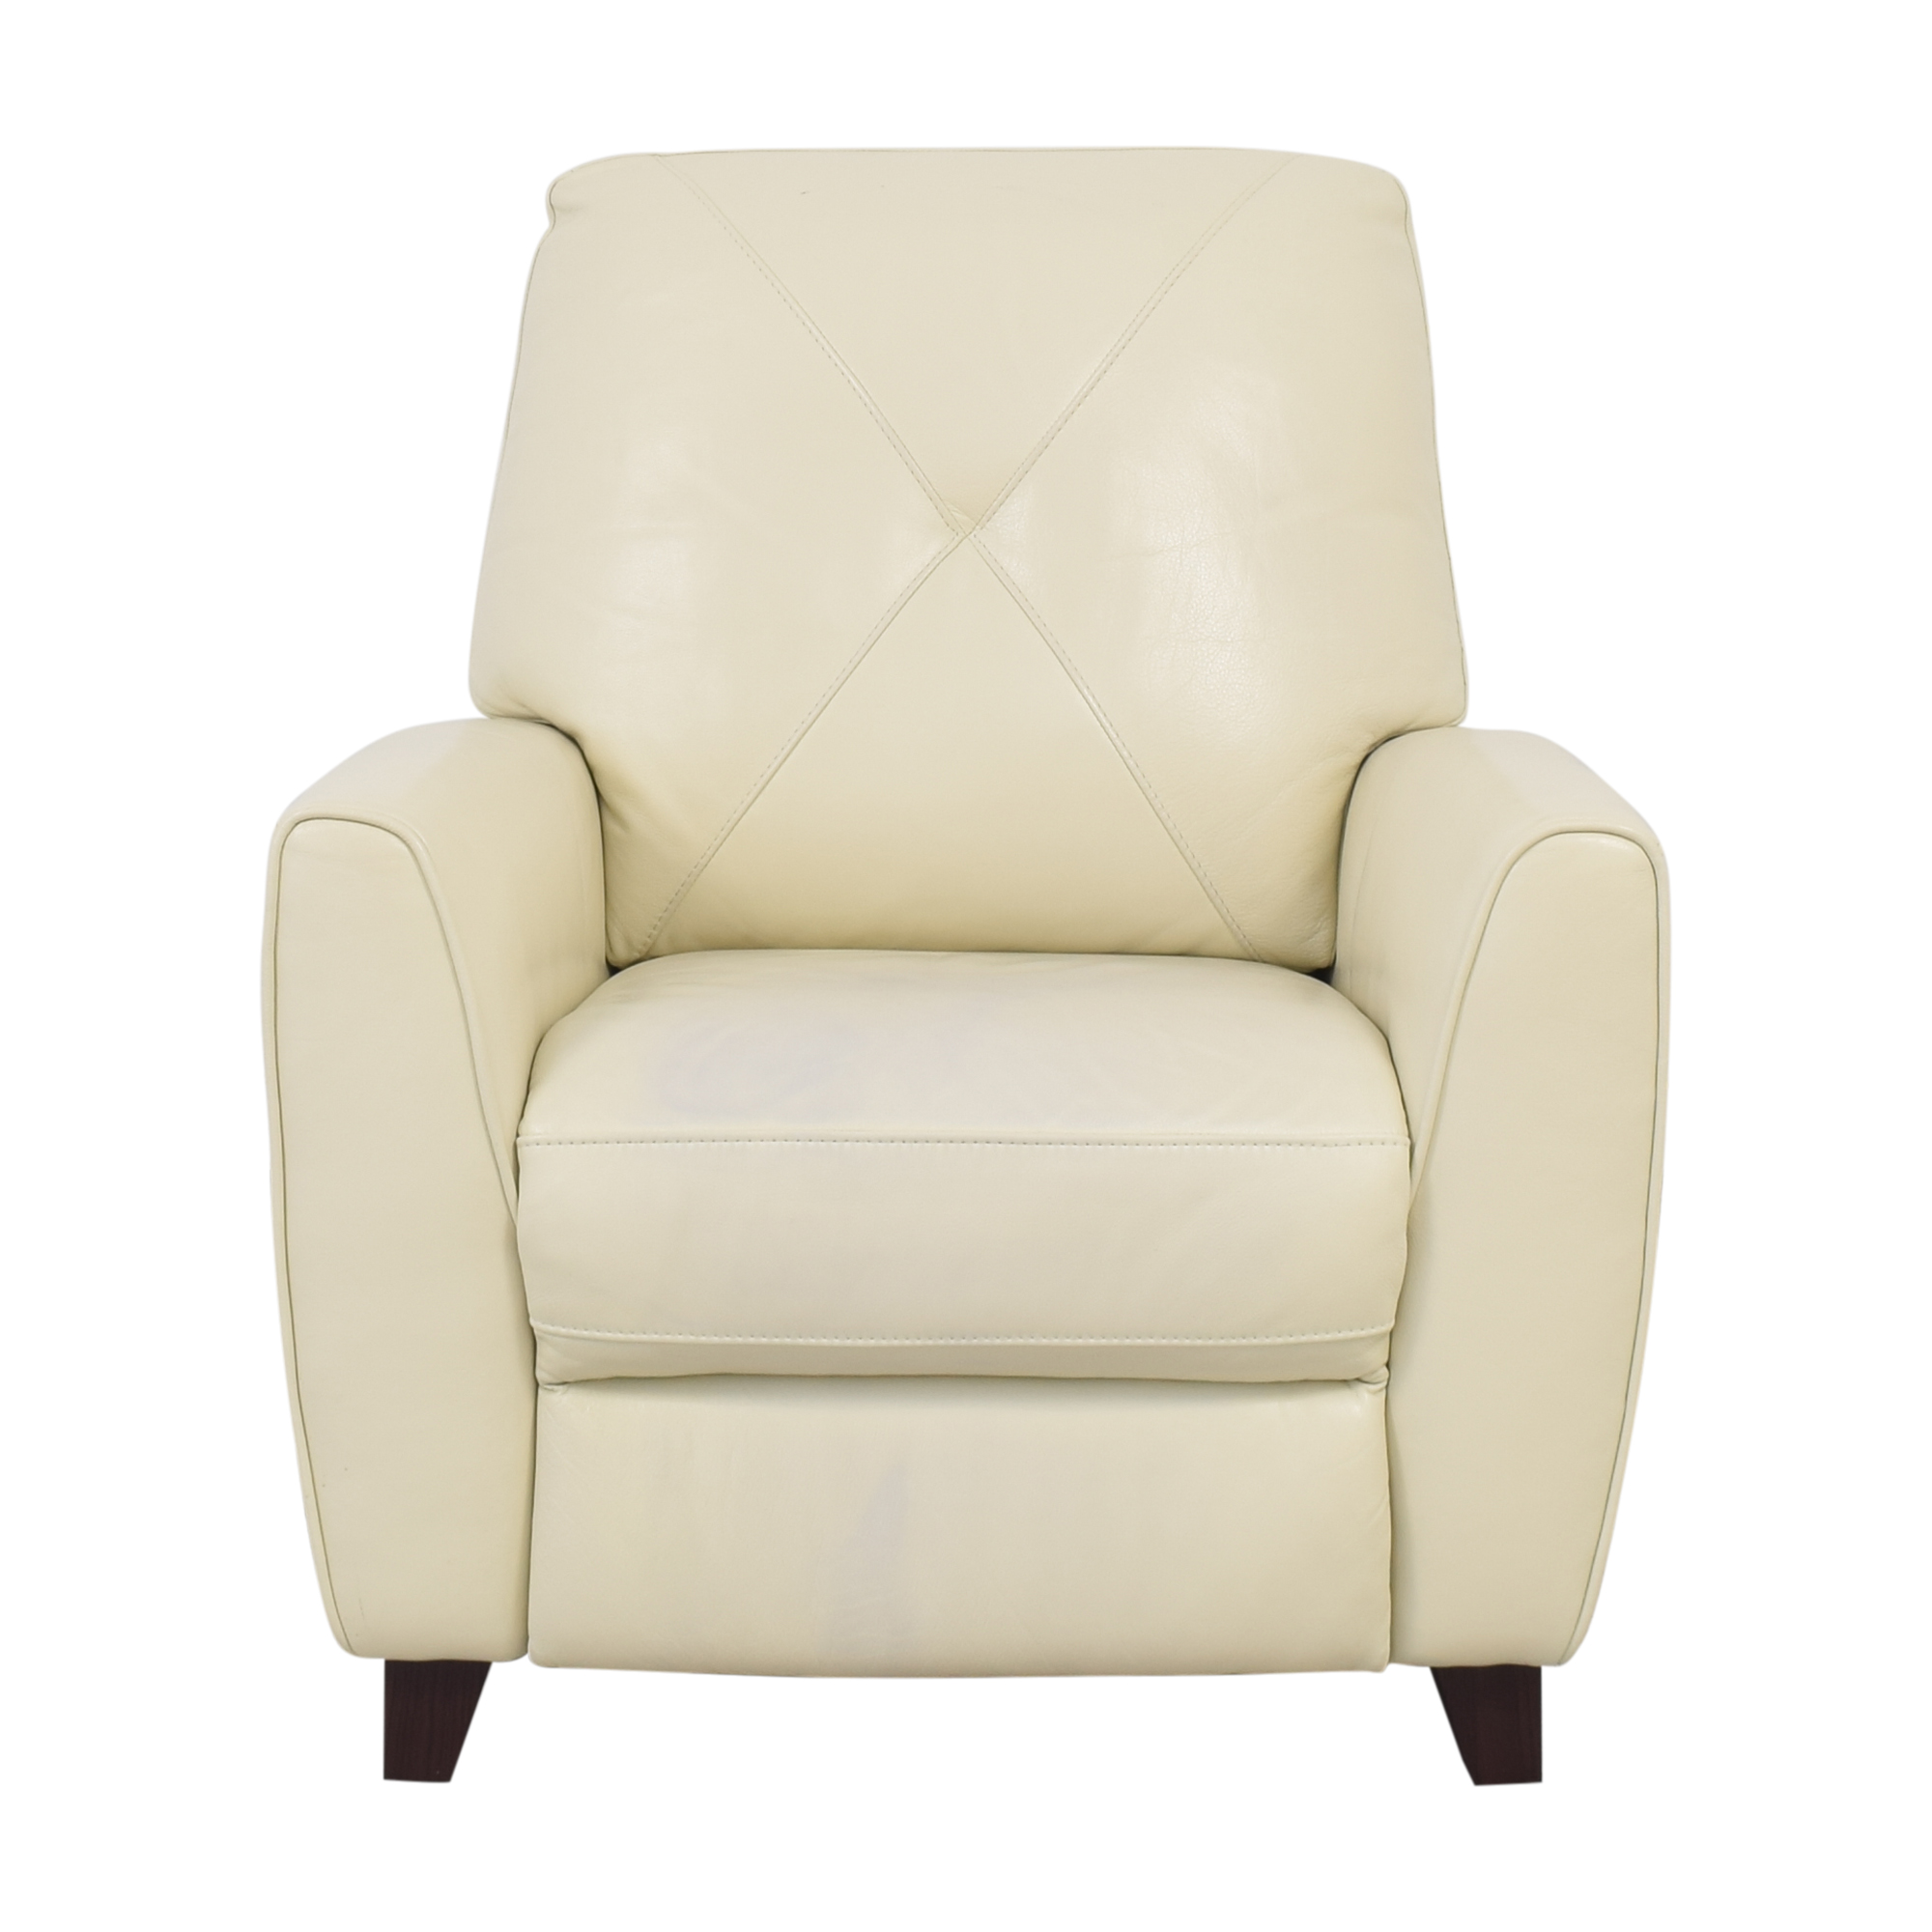 Macy's Macy's Myia Pushback Reclining Chair Chairs